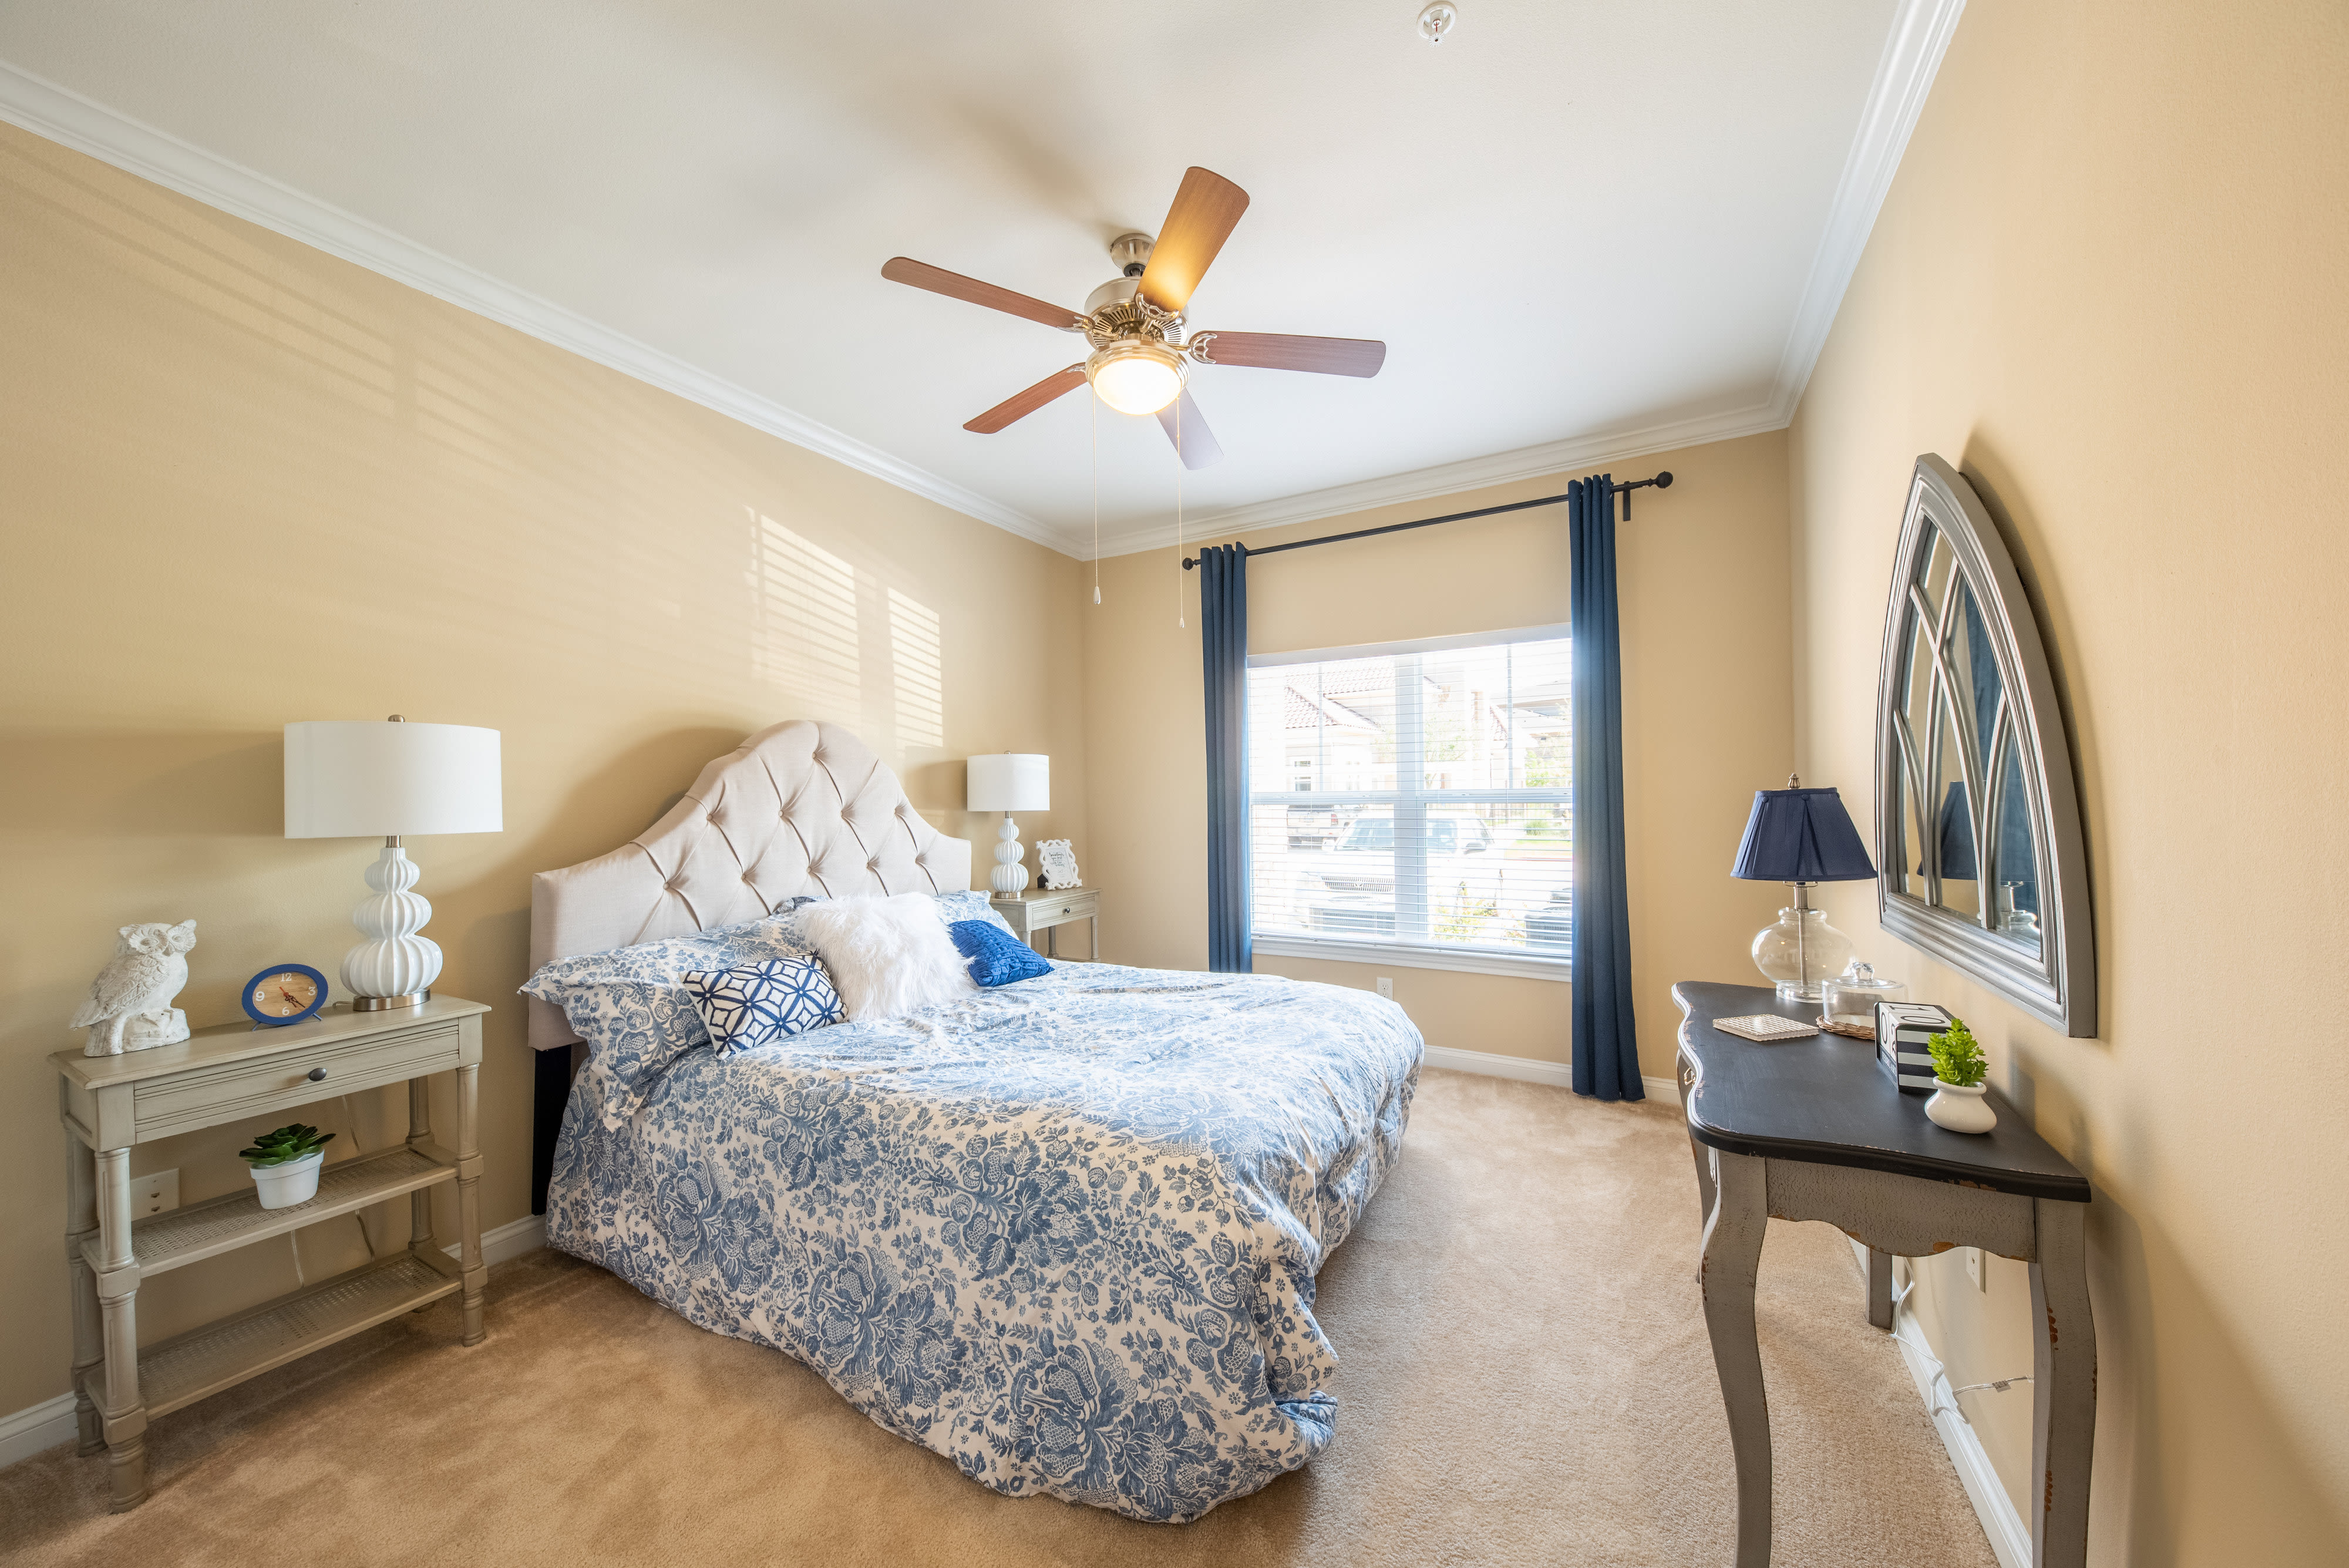 Living area with a ceiling fan at Hilltops in Conroe, Texas